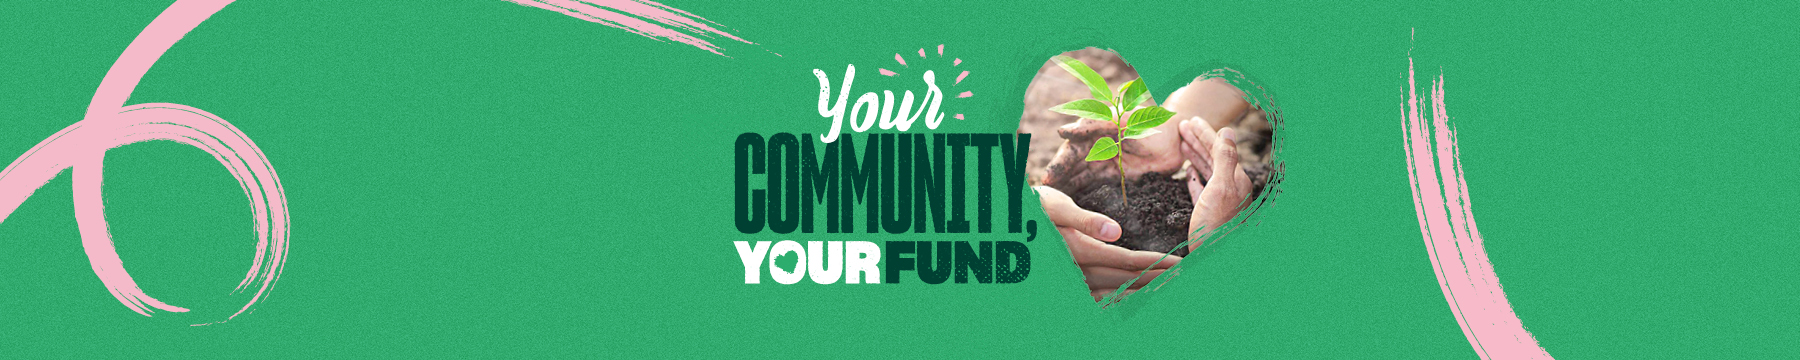 Your community, your fund inner website banner.